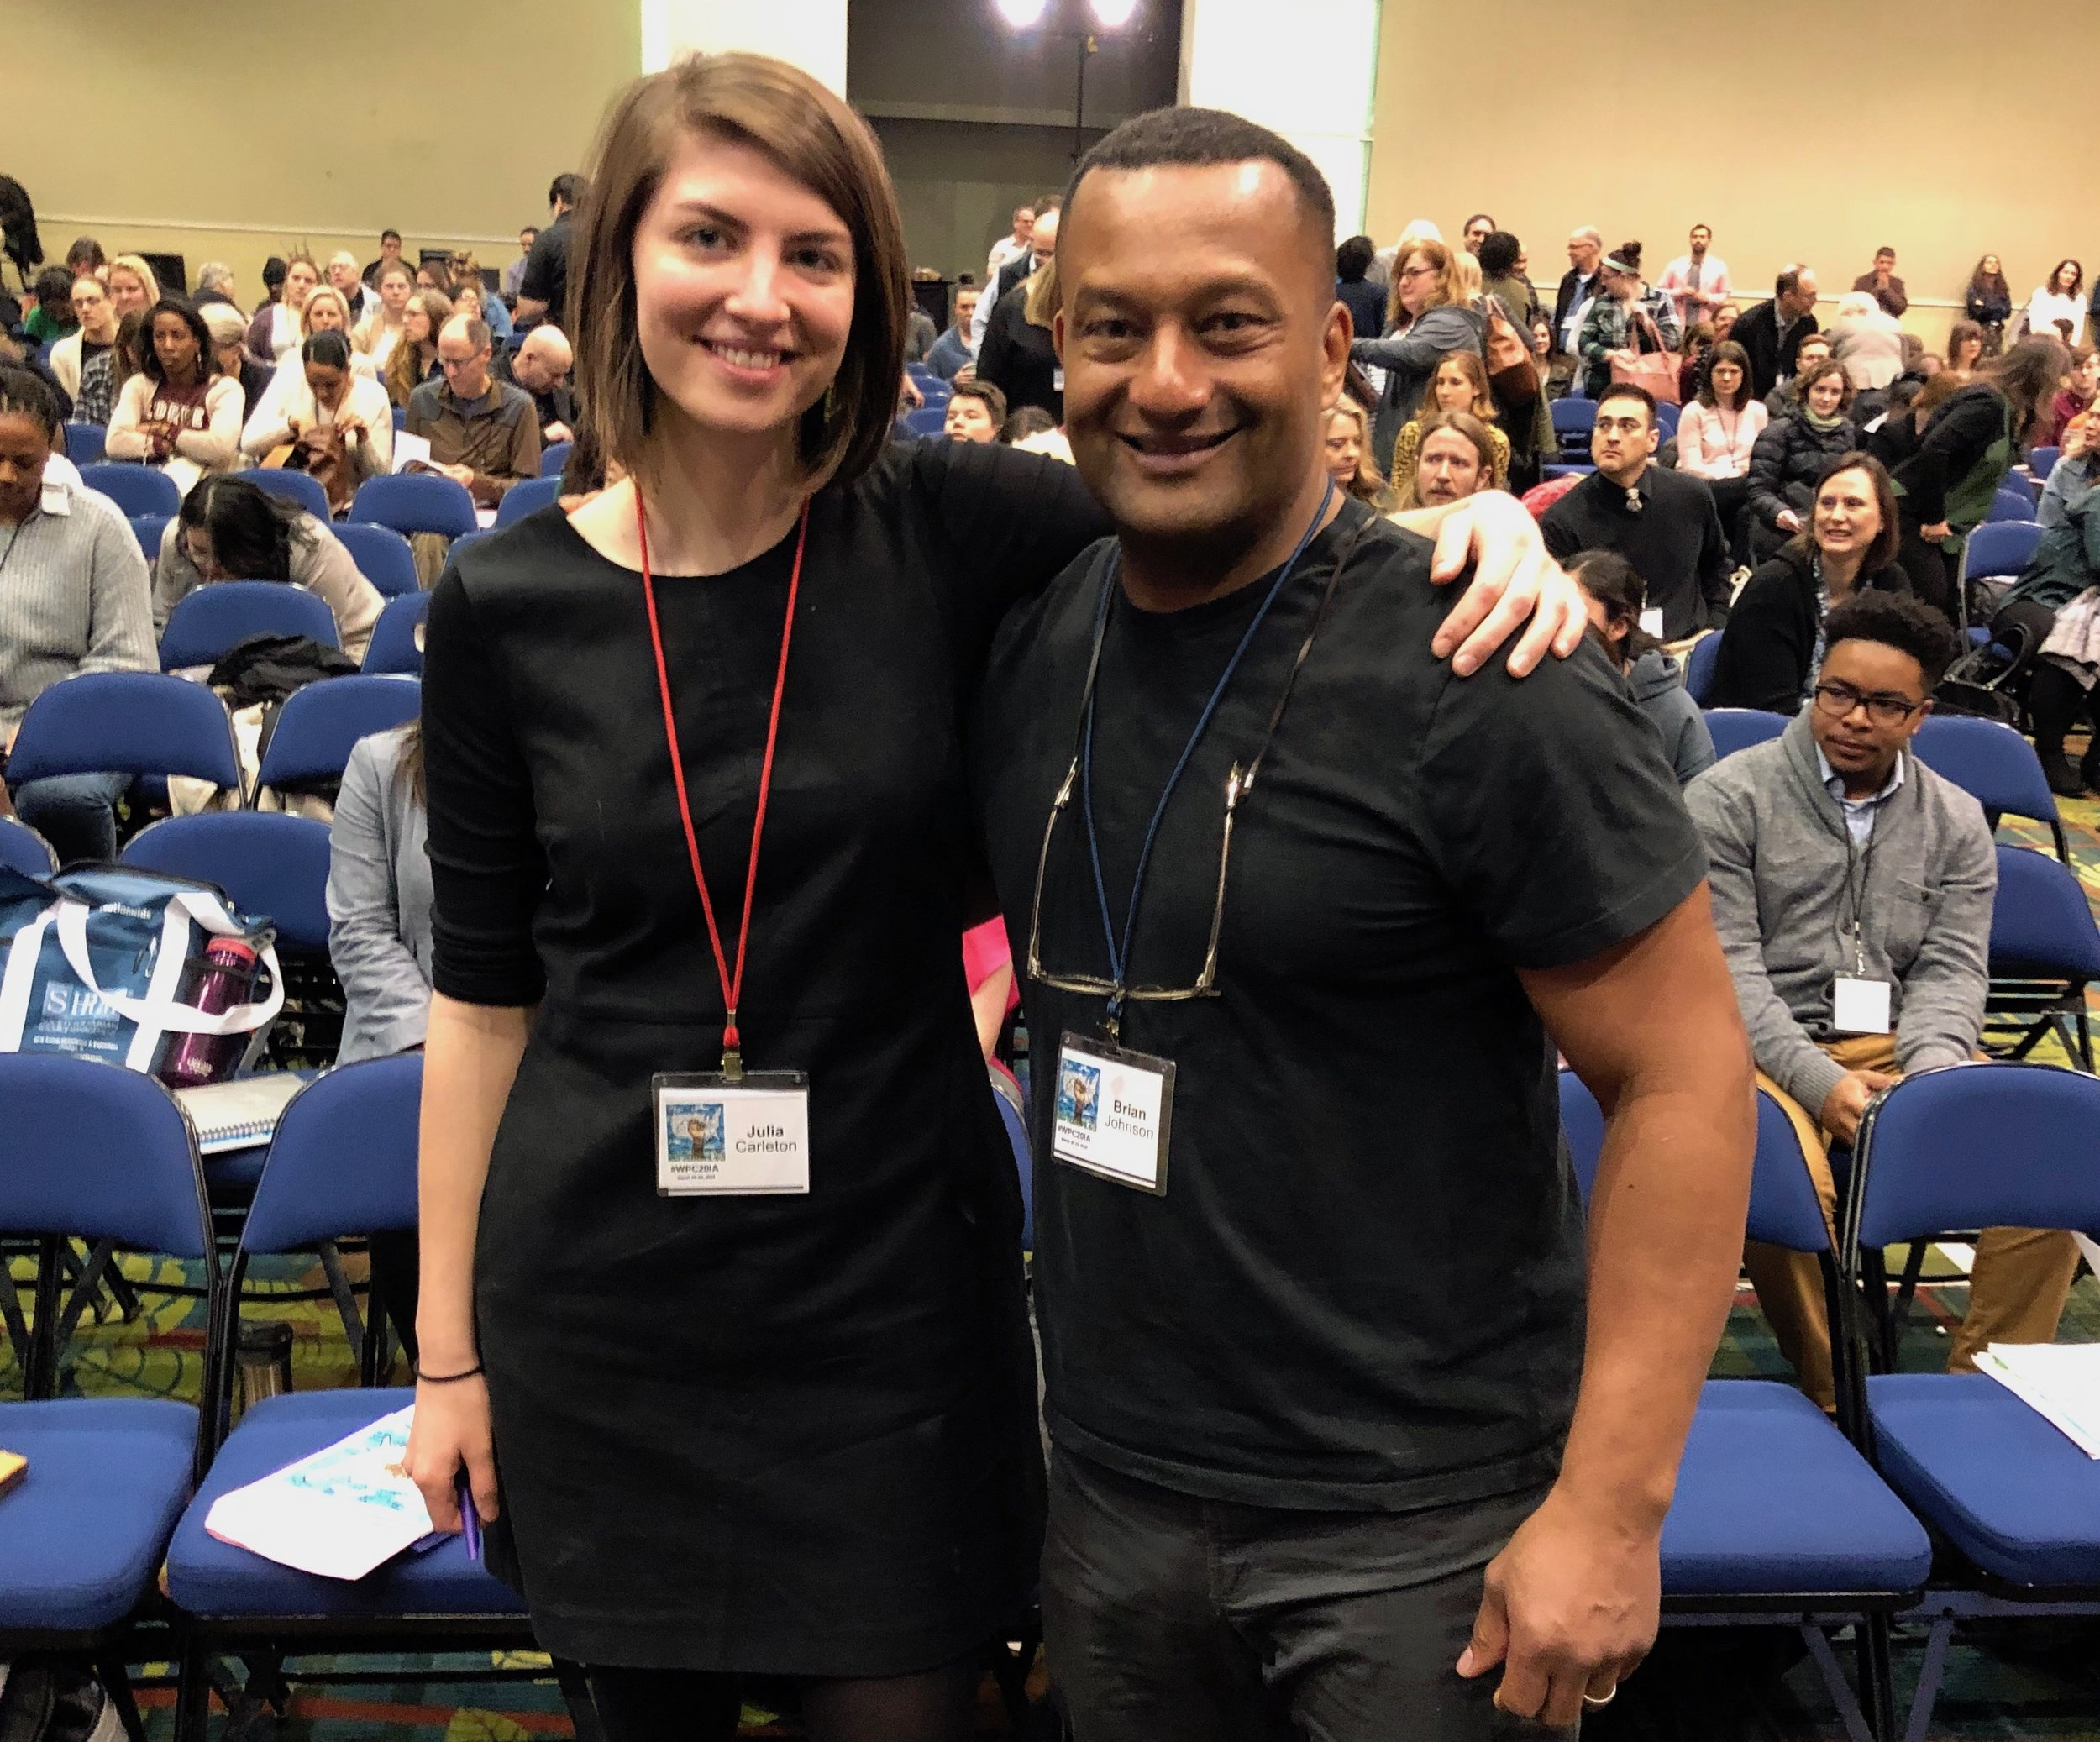 Julia Carleton and Brian Johnson at the White Privilege Conference in Iowa.